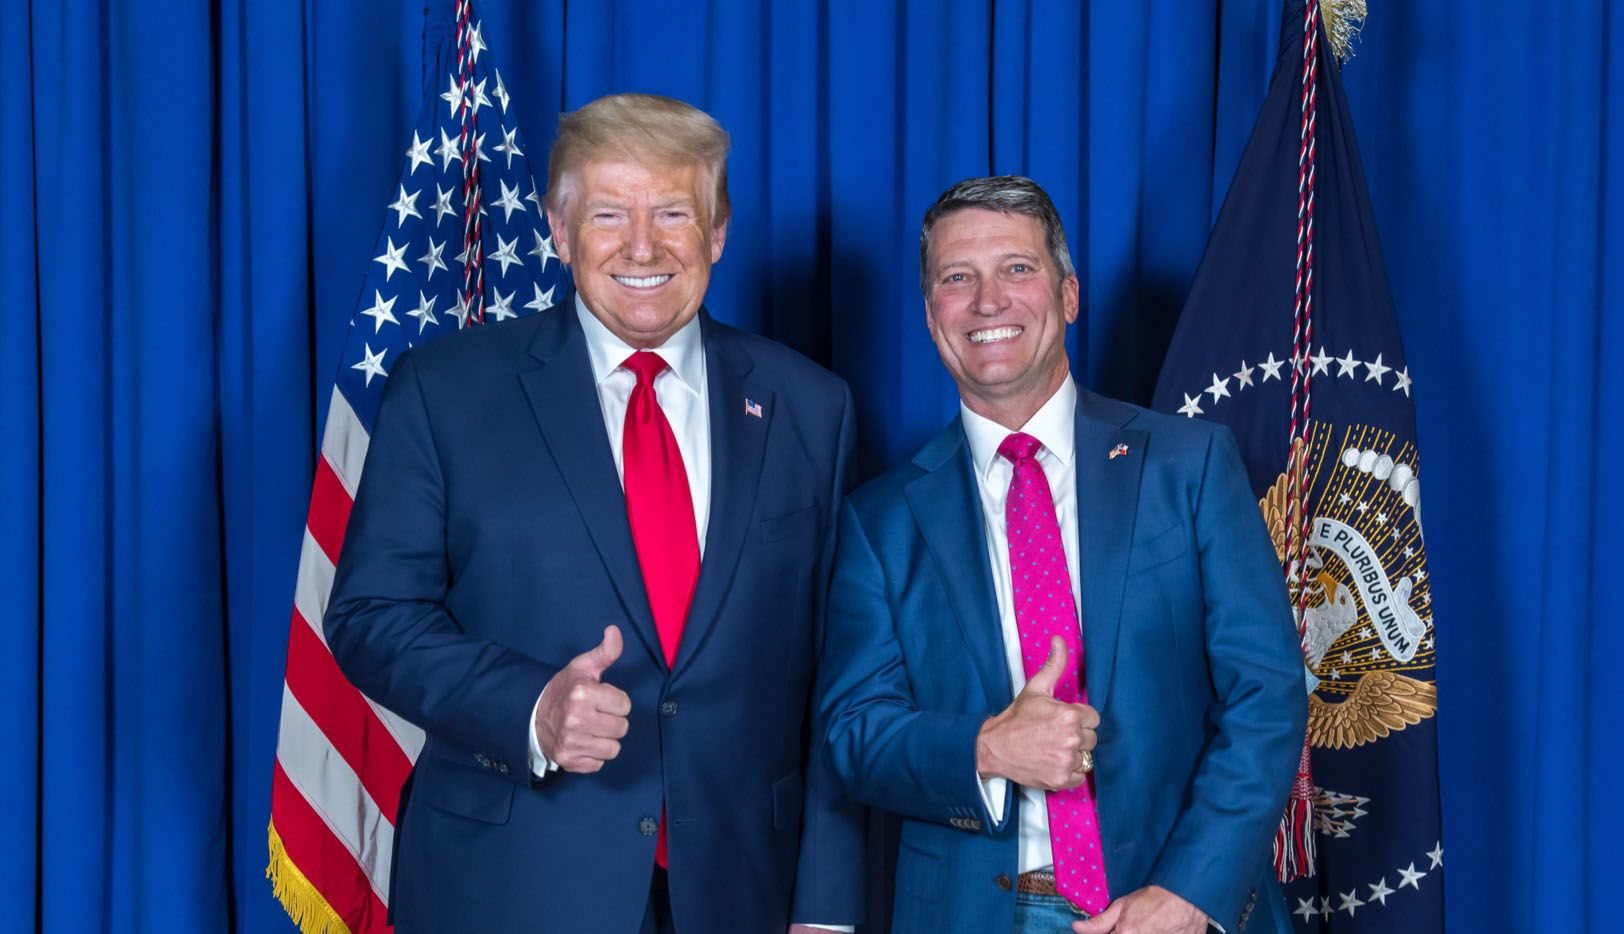 Pres. Donald Trump and Dr. Ronny Jackson. Jackson is the Republican nominee in Texas' 13th Congressional District.